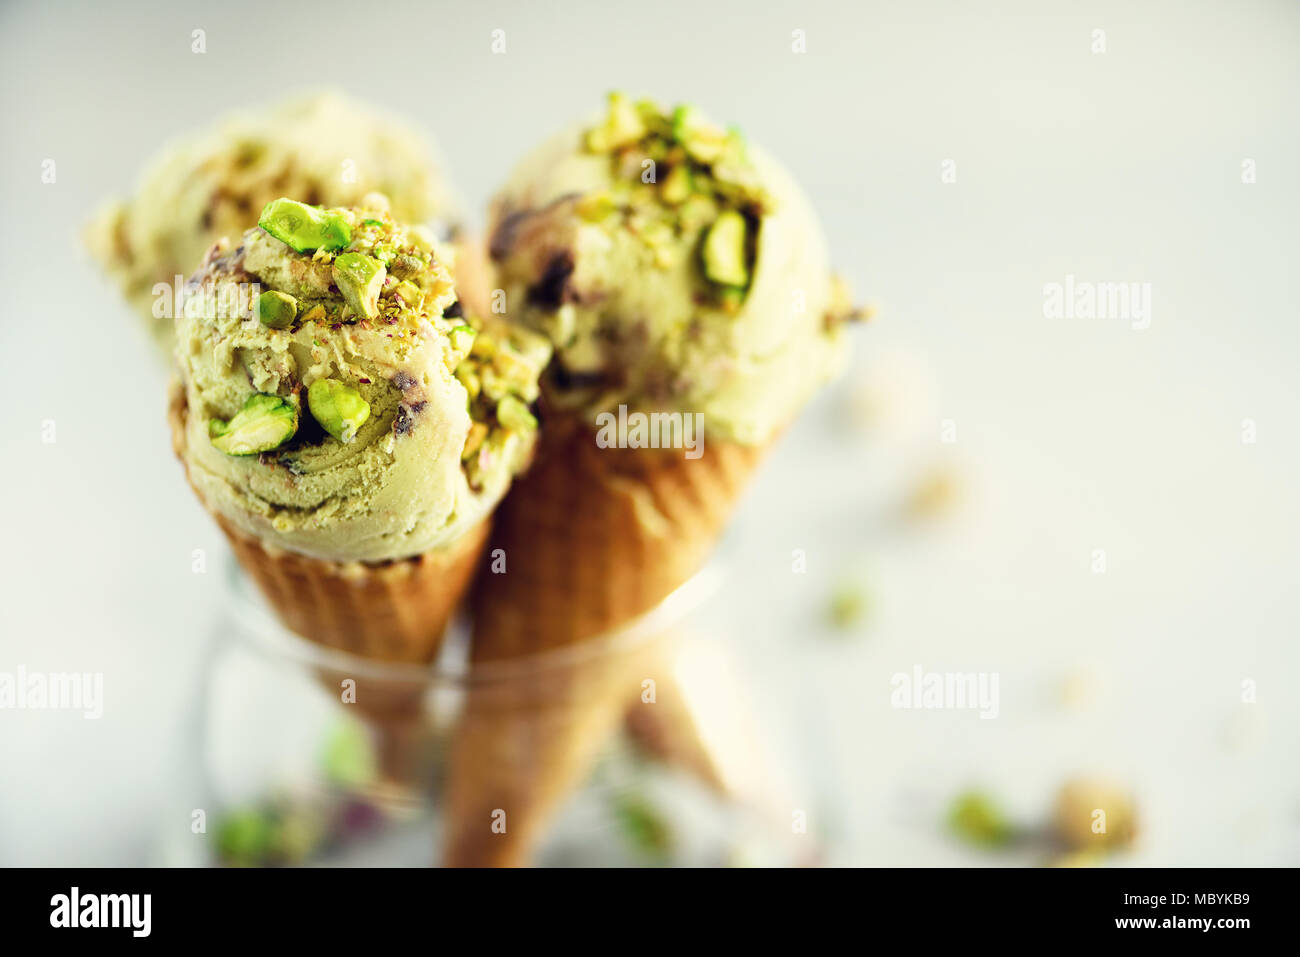 Green ice cream in waffle cone with chocolate and pistachio nuts on grey stone background. Summer food concept, copy space. Healthy gluten free ice-cream. - Stock Image